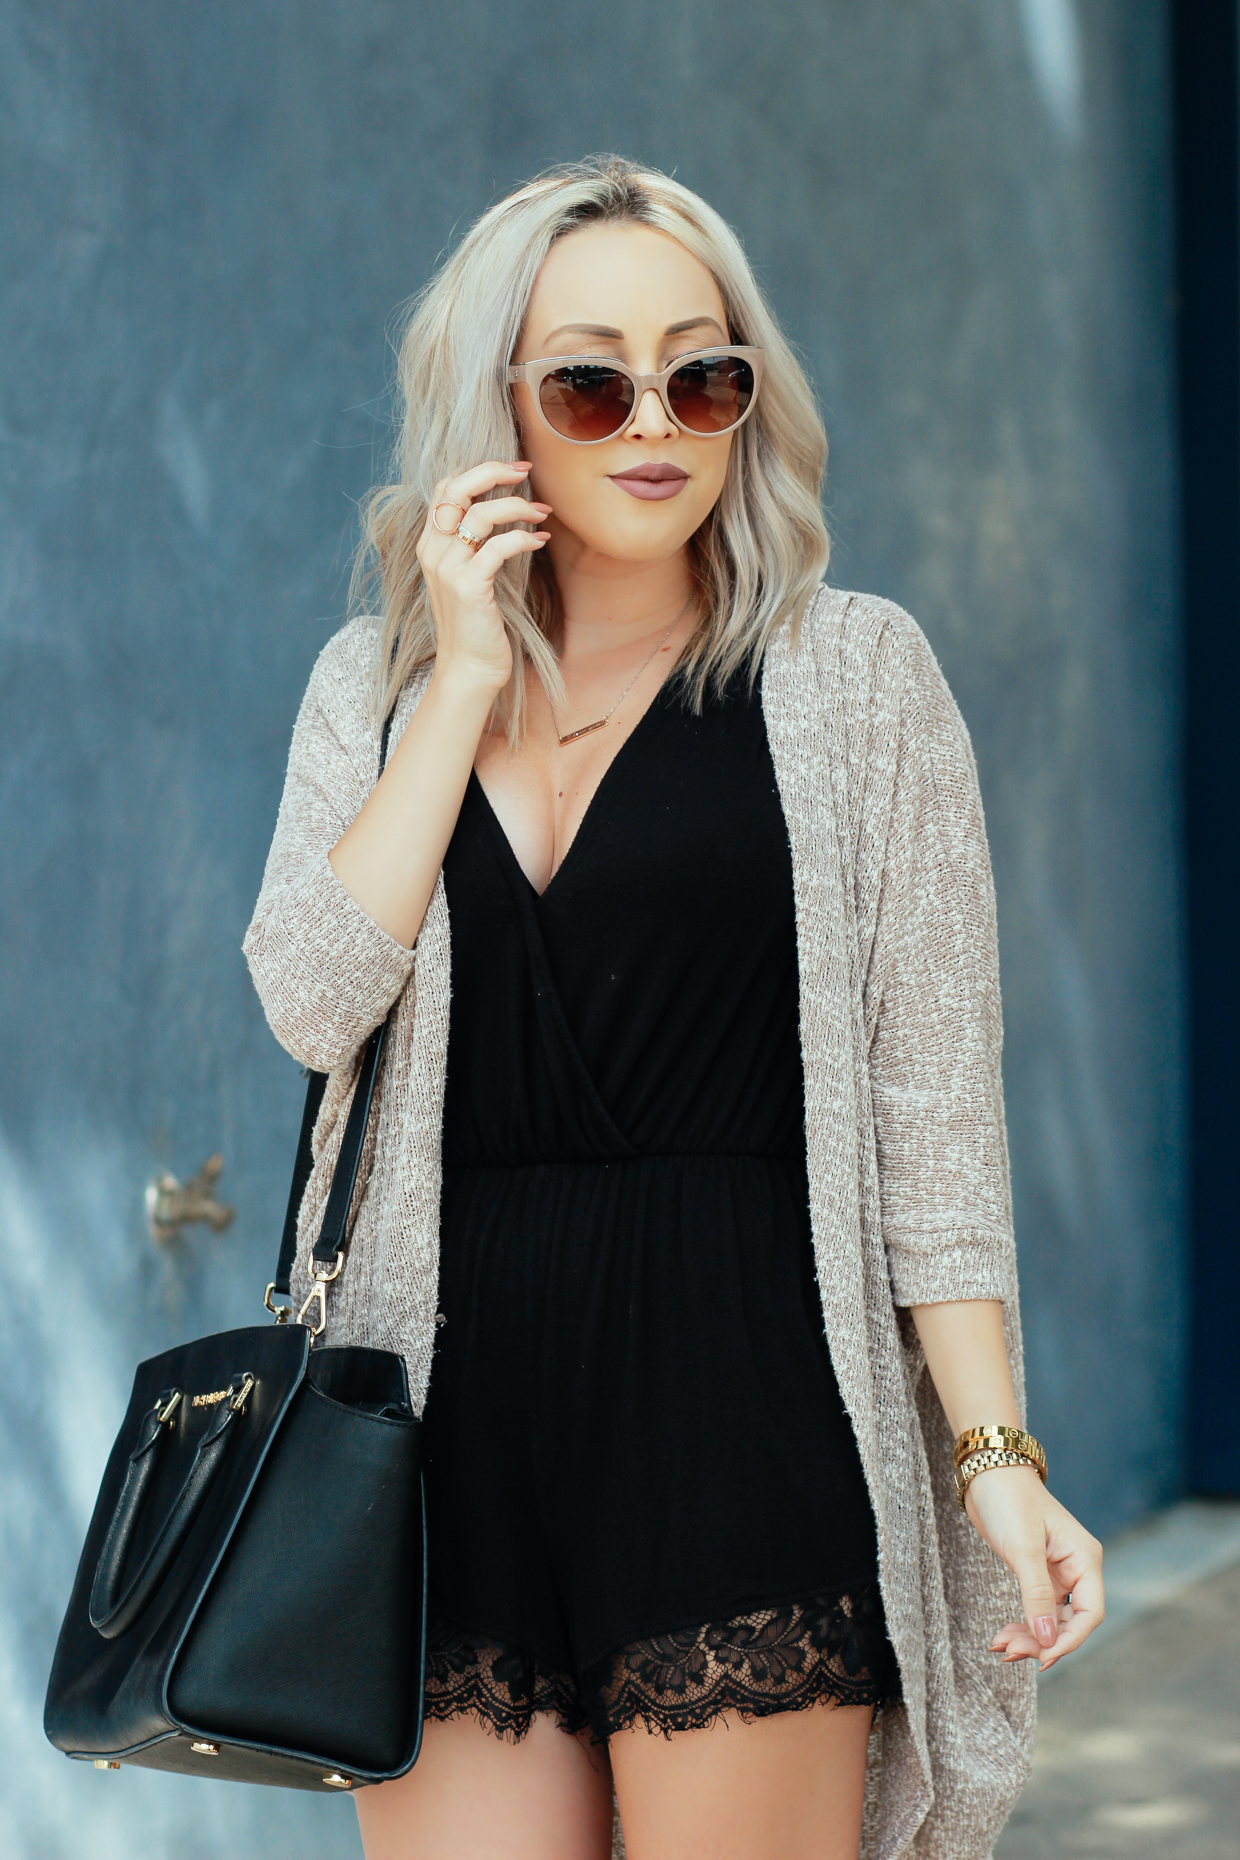 Blondie in the City | Balenciaga Sunglasses, Black Lace Romper, Black Michael Kors Bag